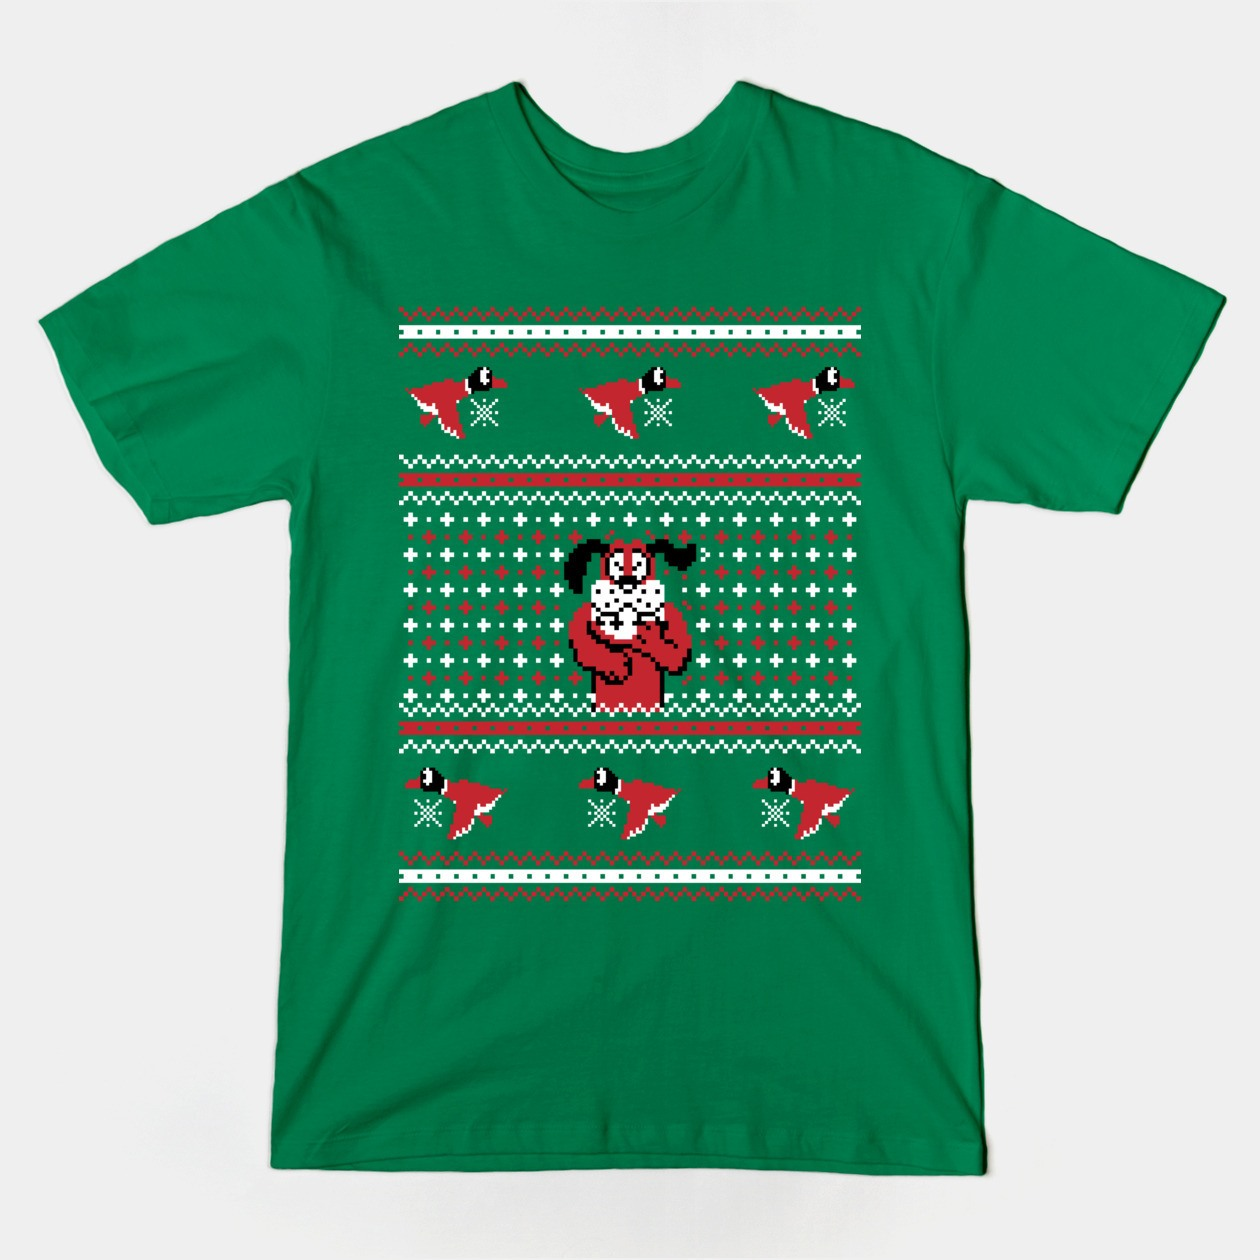 Scavenger Hunt List >> FESTIVE DUCK HUNT T-Shirt - The Shirt List